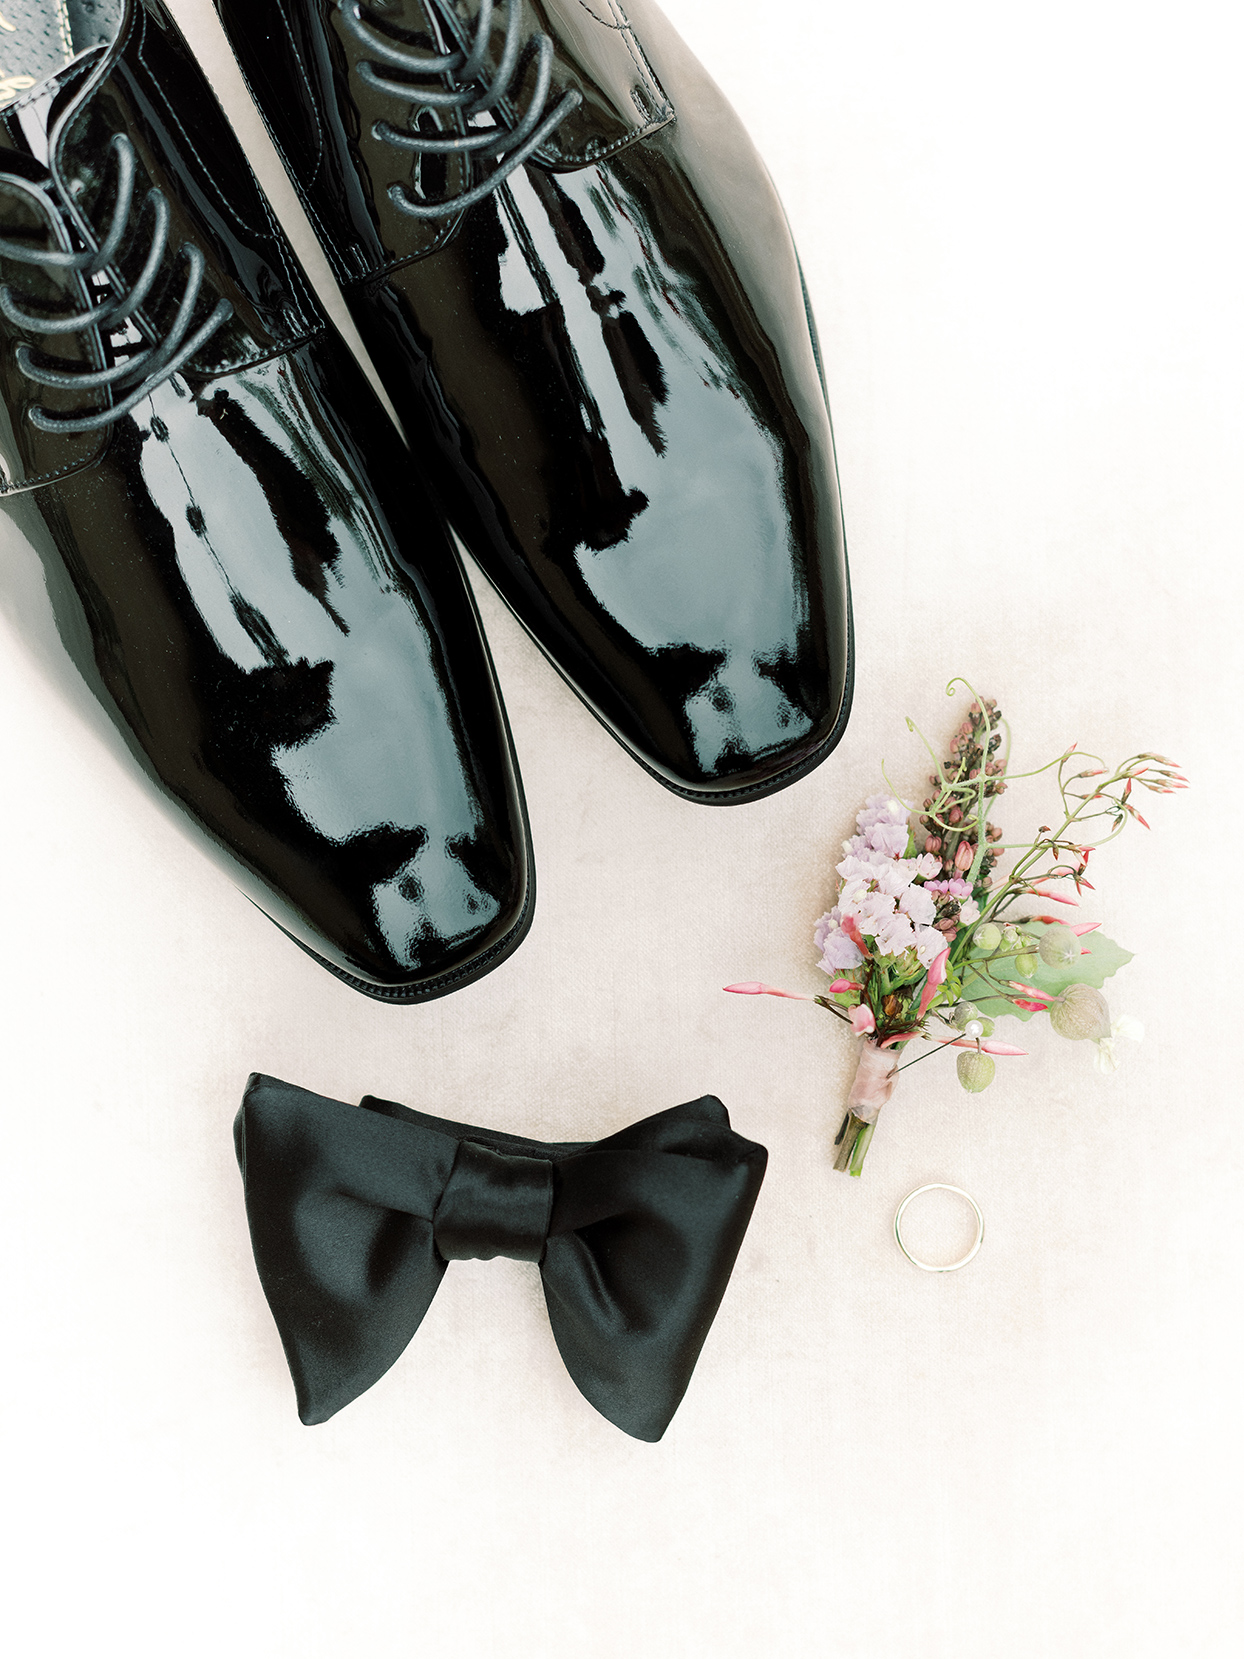 raina salih wedding groom's accessories shoes, ring, boutonniere, bowtie